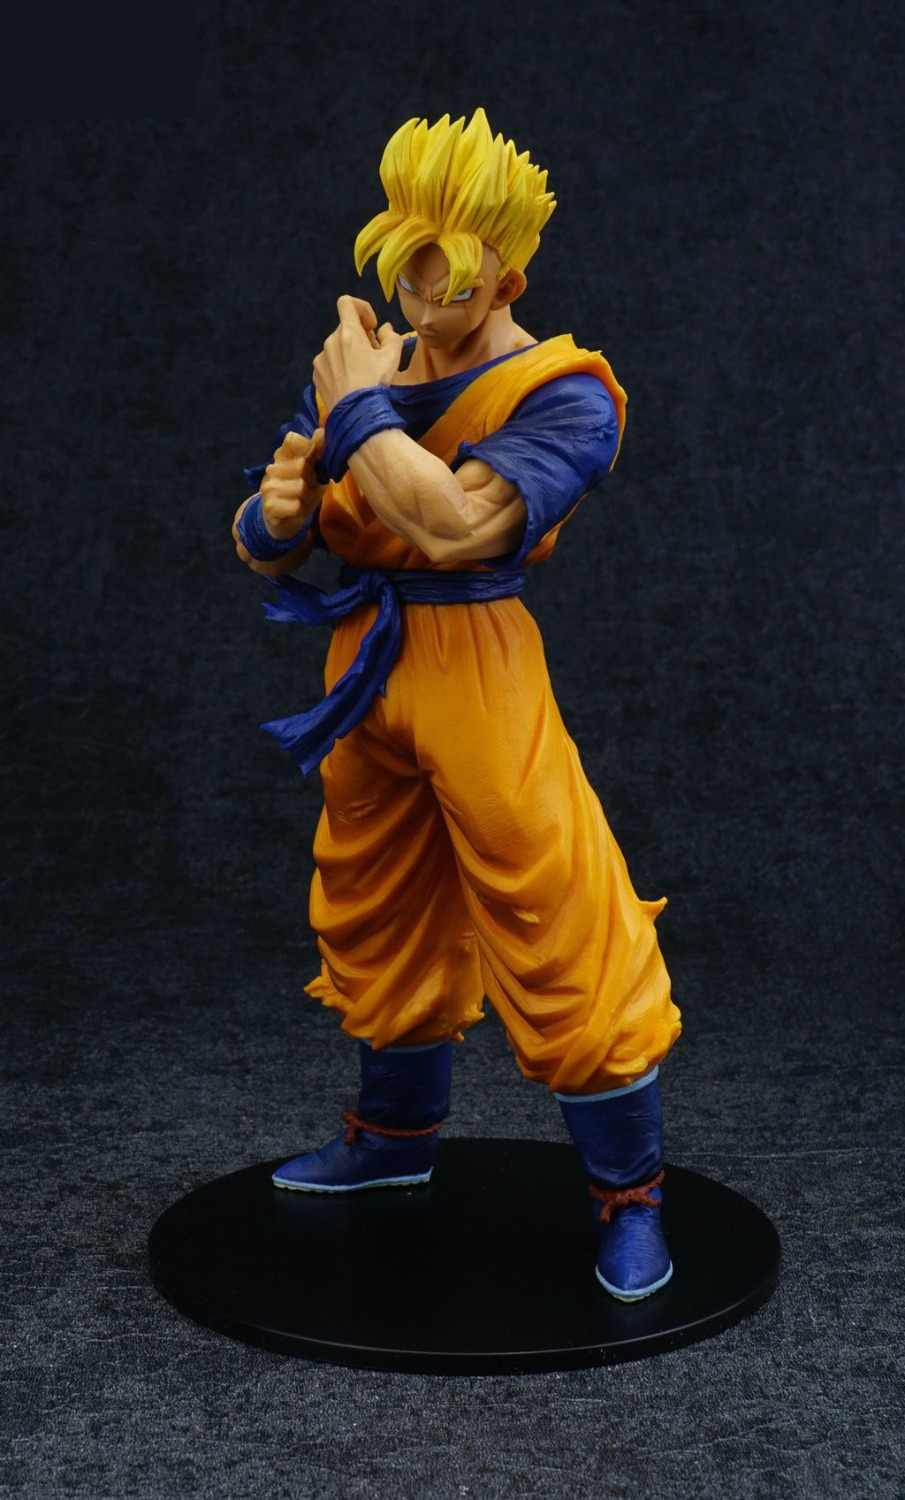 21cm Dragon Ball Z Super Saiyan Son Gohan Anime Action Figure PVC figures toys Collection for Christmas gift